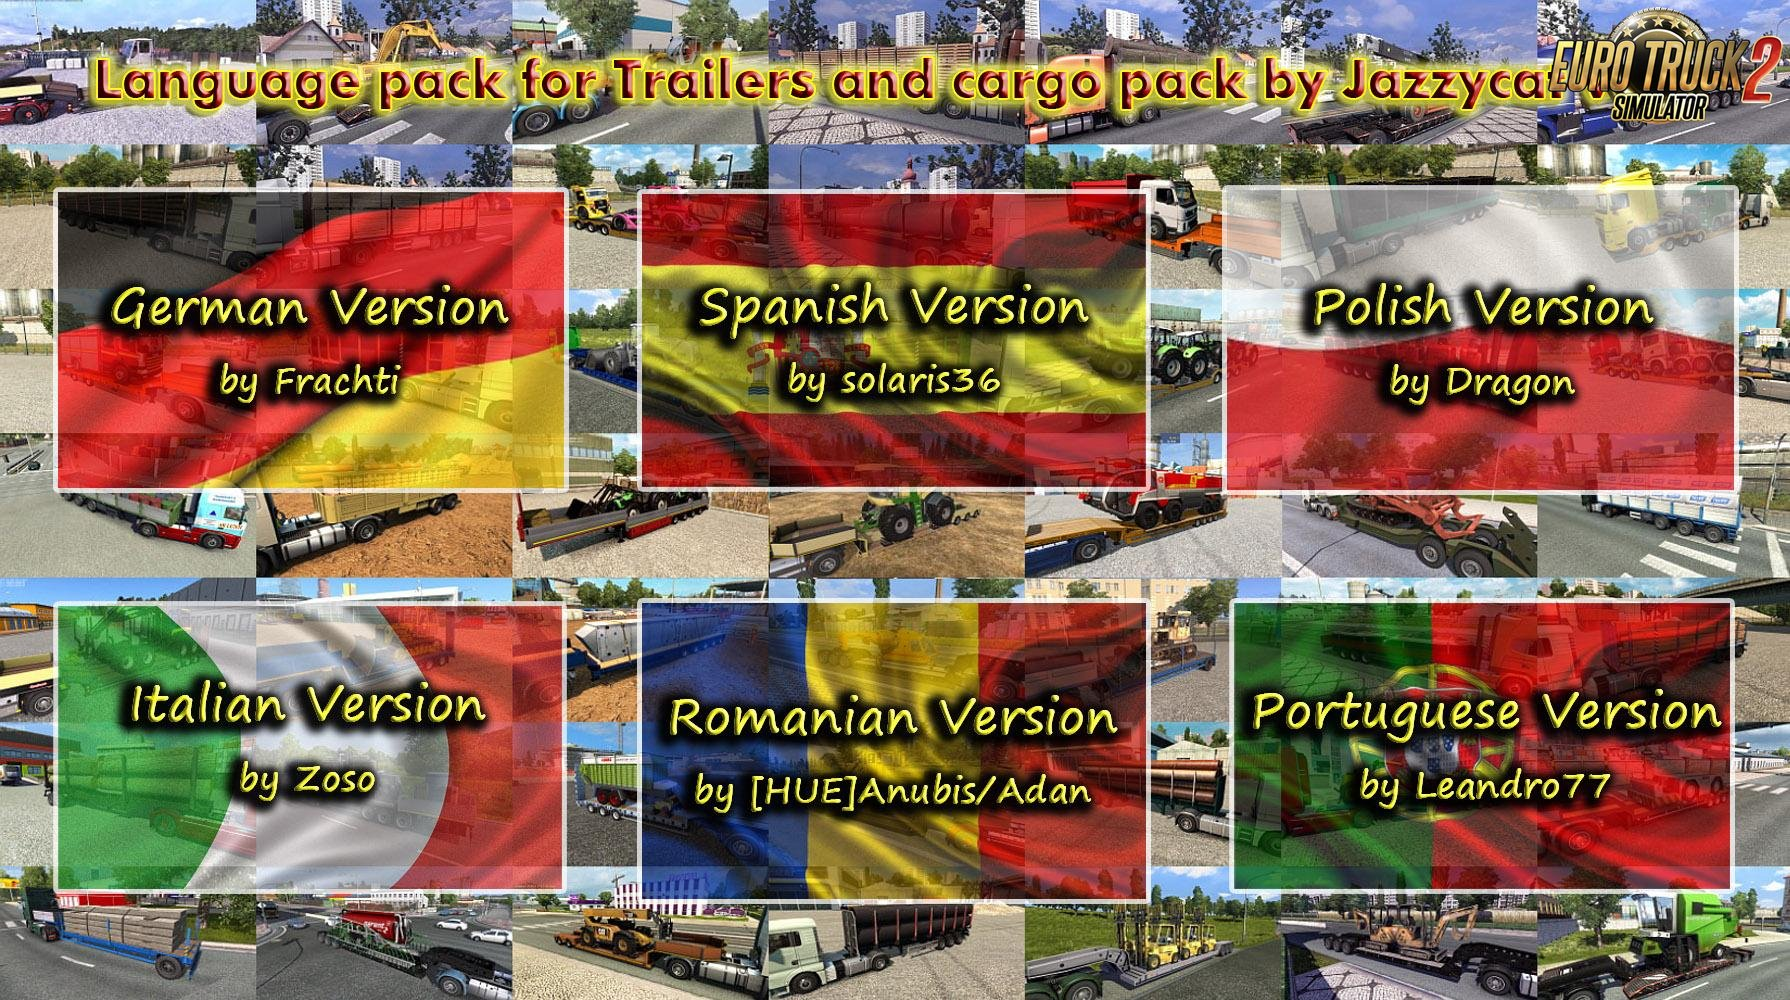 Language Pack for Trailers and Cargo Pack v4.2 by Jazzycat